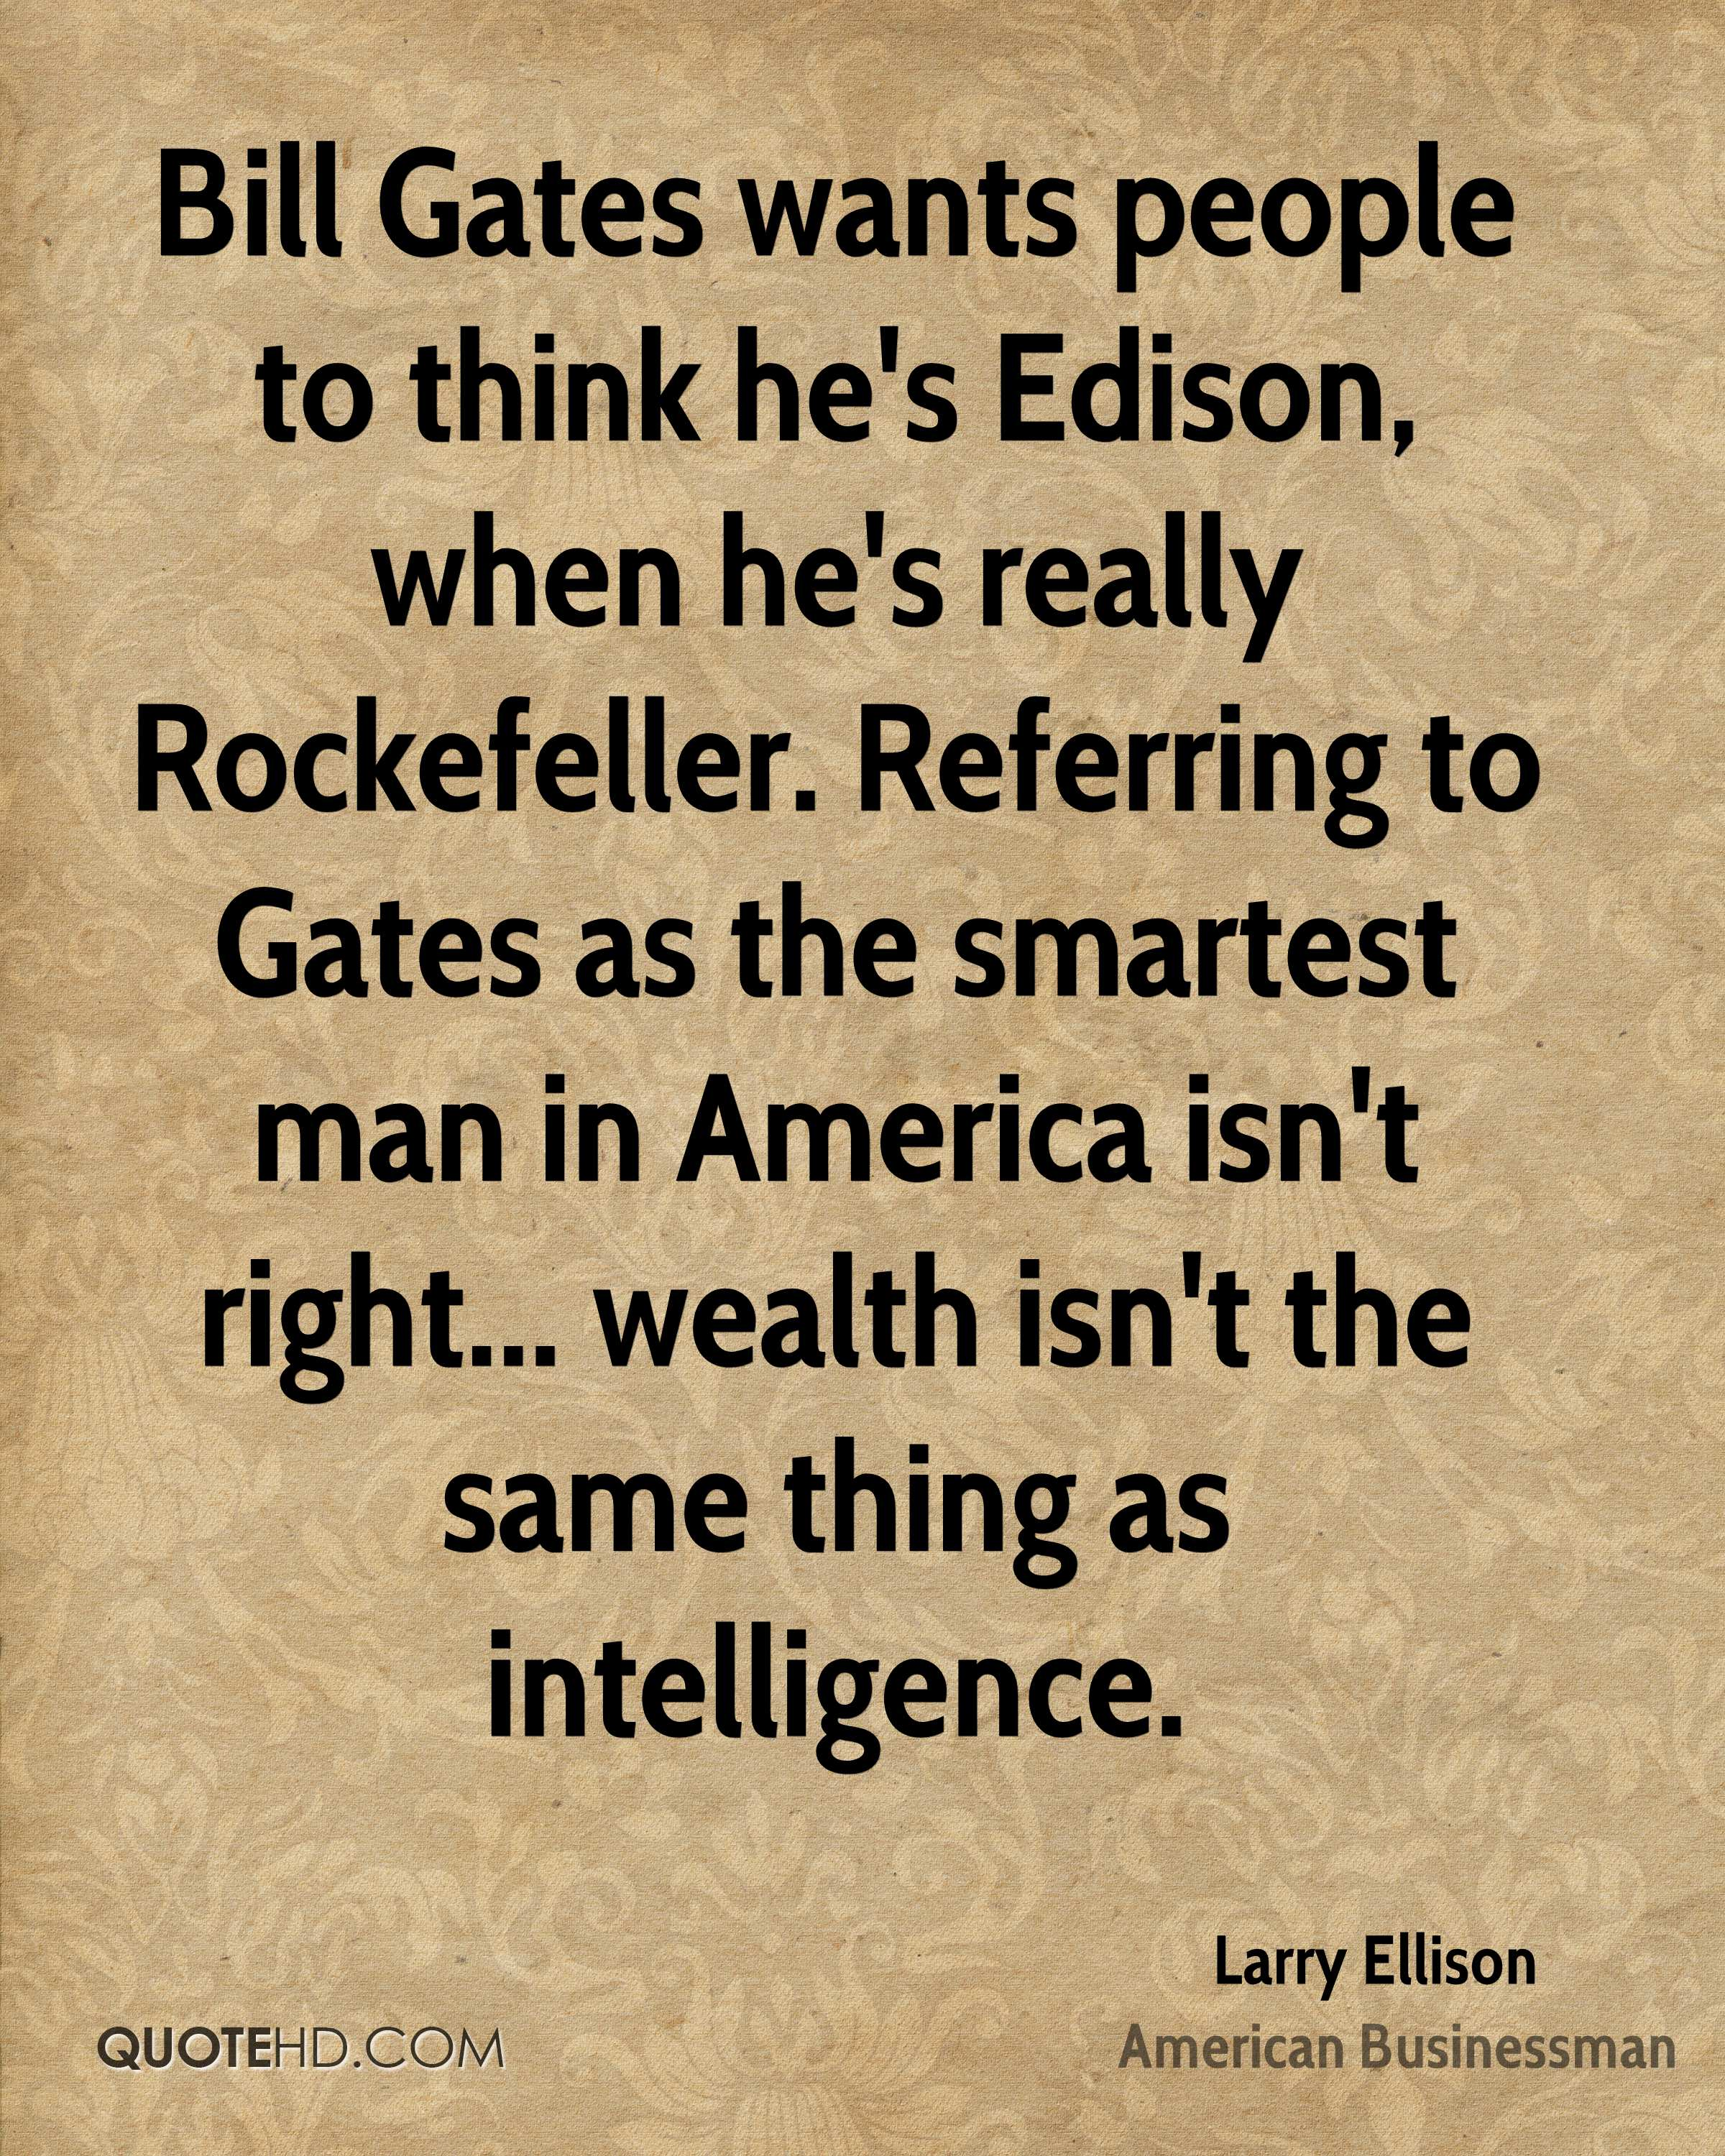 Bill Gates wants people to think he's Edison, when he's really Rockefeller. Referring to Gates as the smartest man in America isn't right... wealth isn't the same thing as intelligence.